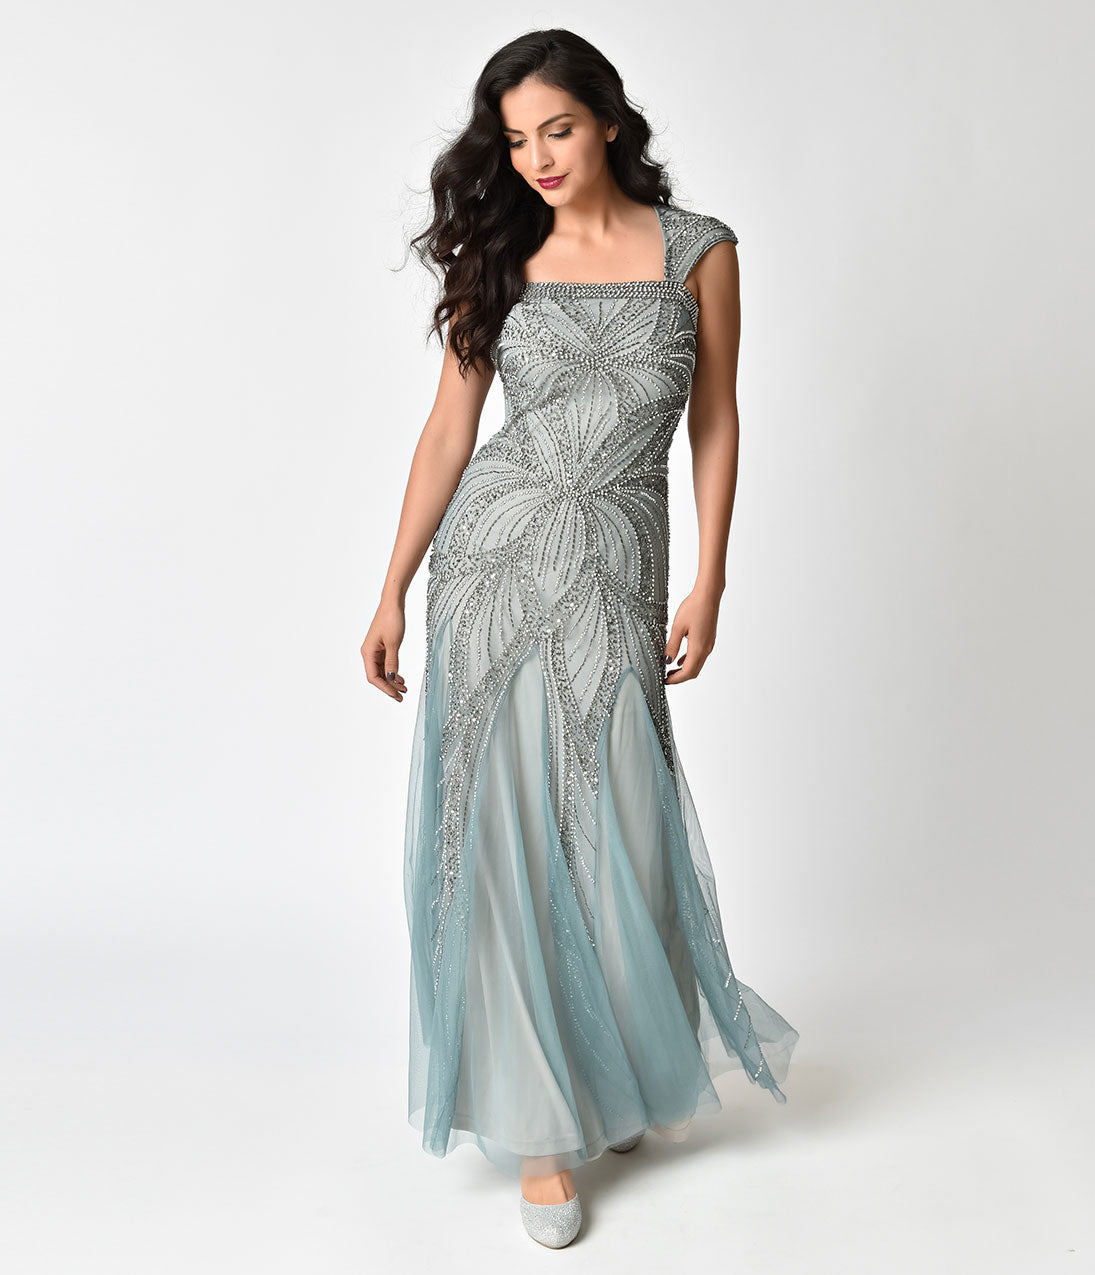 Vintage Evening Dresses Frock and Frill Mint Green  Silver Embellished Bradi Maxi Dress $208.00 AT vintagedancer.com